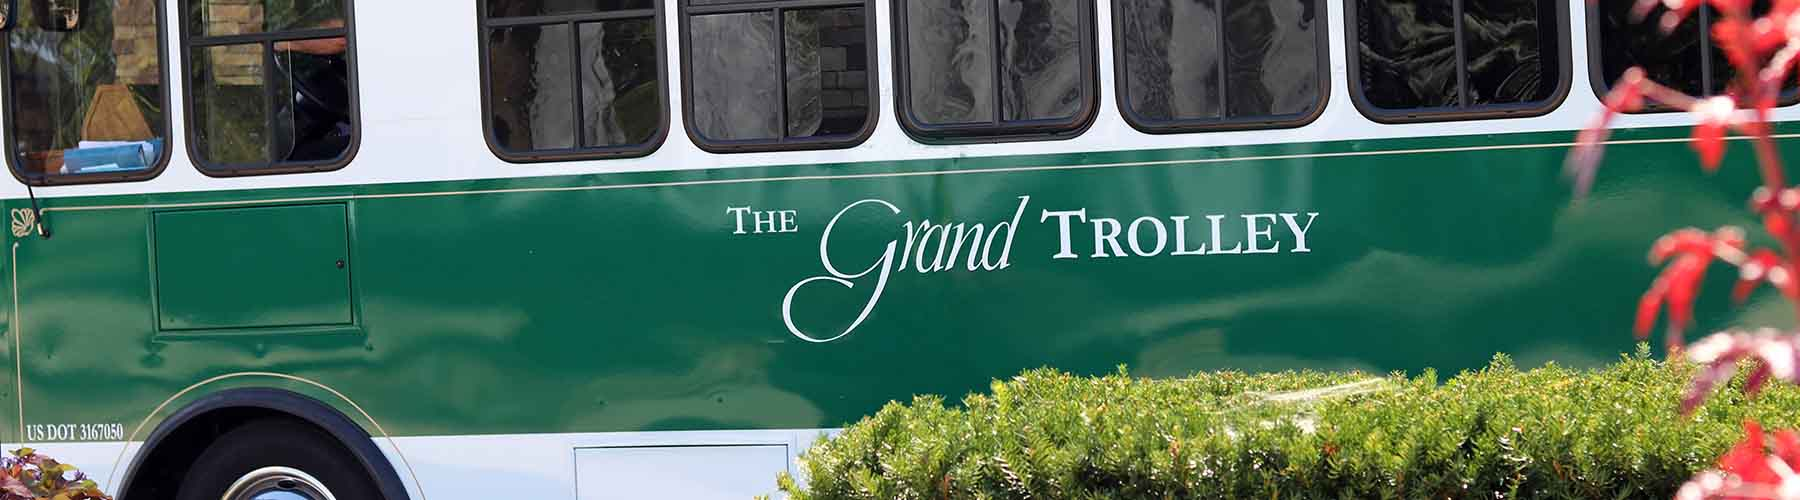 The Grand trolley